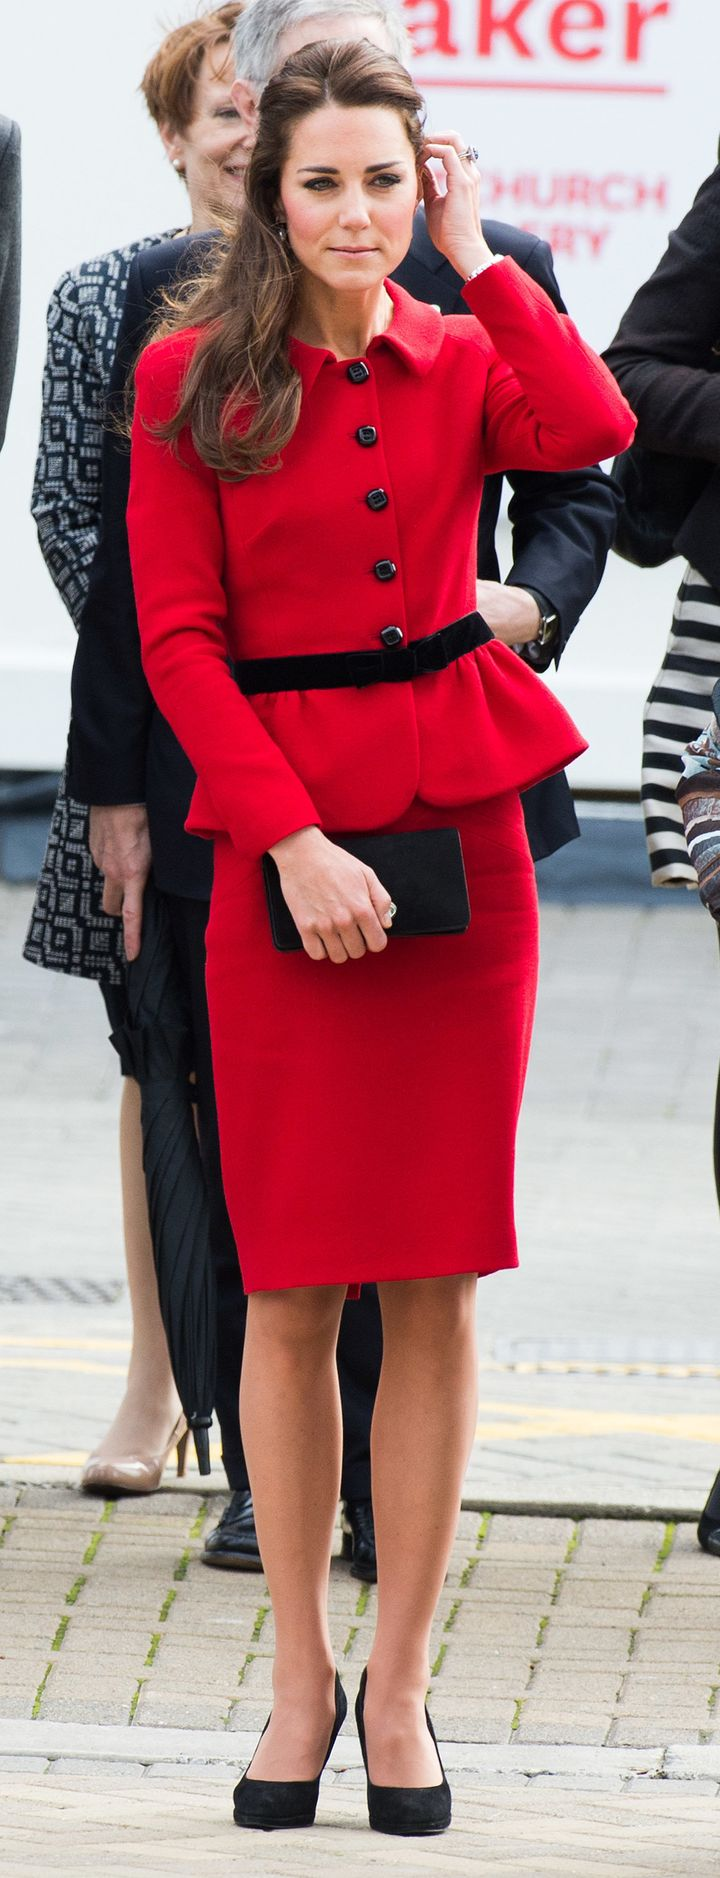 In Luisa Spagnoli, in Christchurch, New Zealand on 14 April 2014.